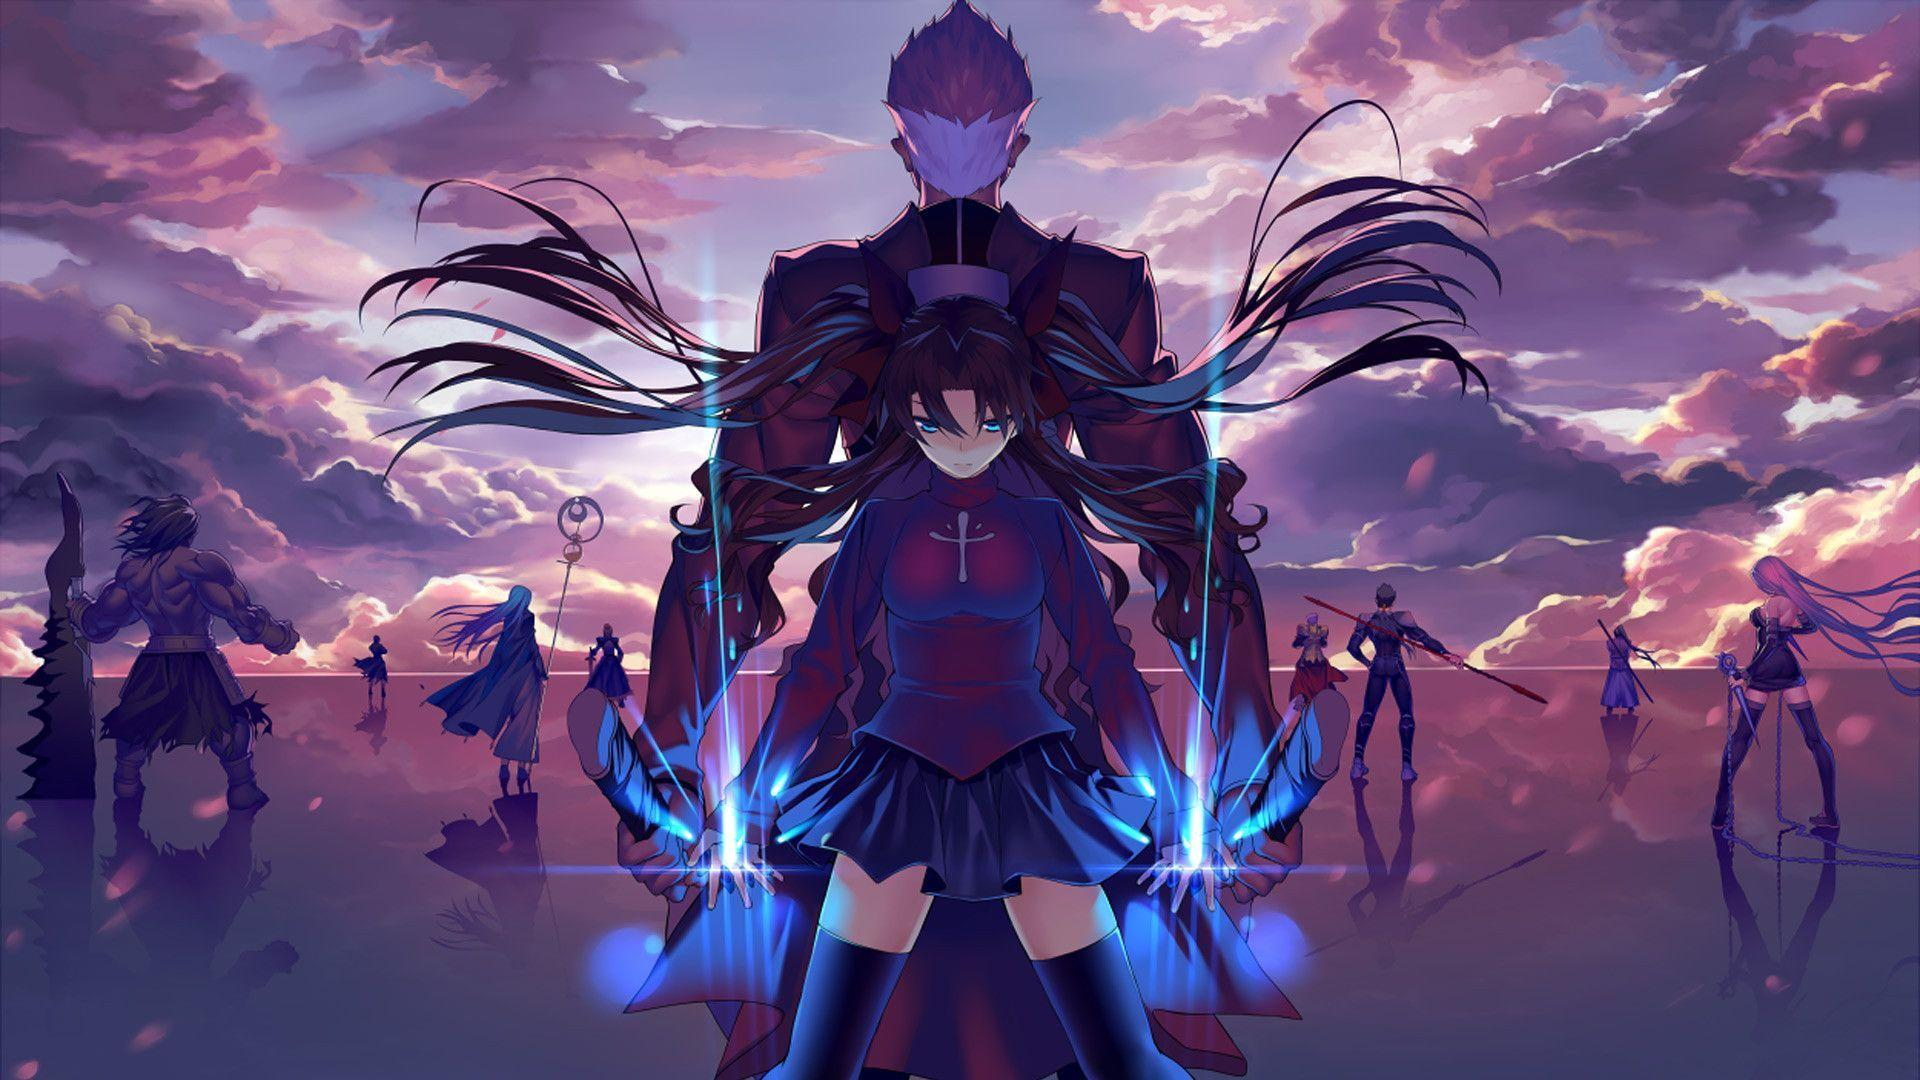 Fatestay Night Anime Wallpapers